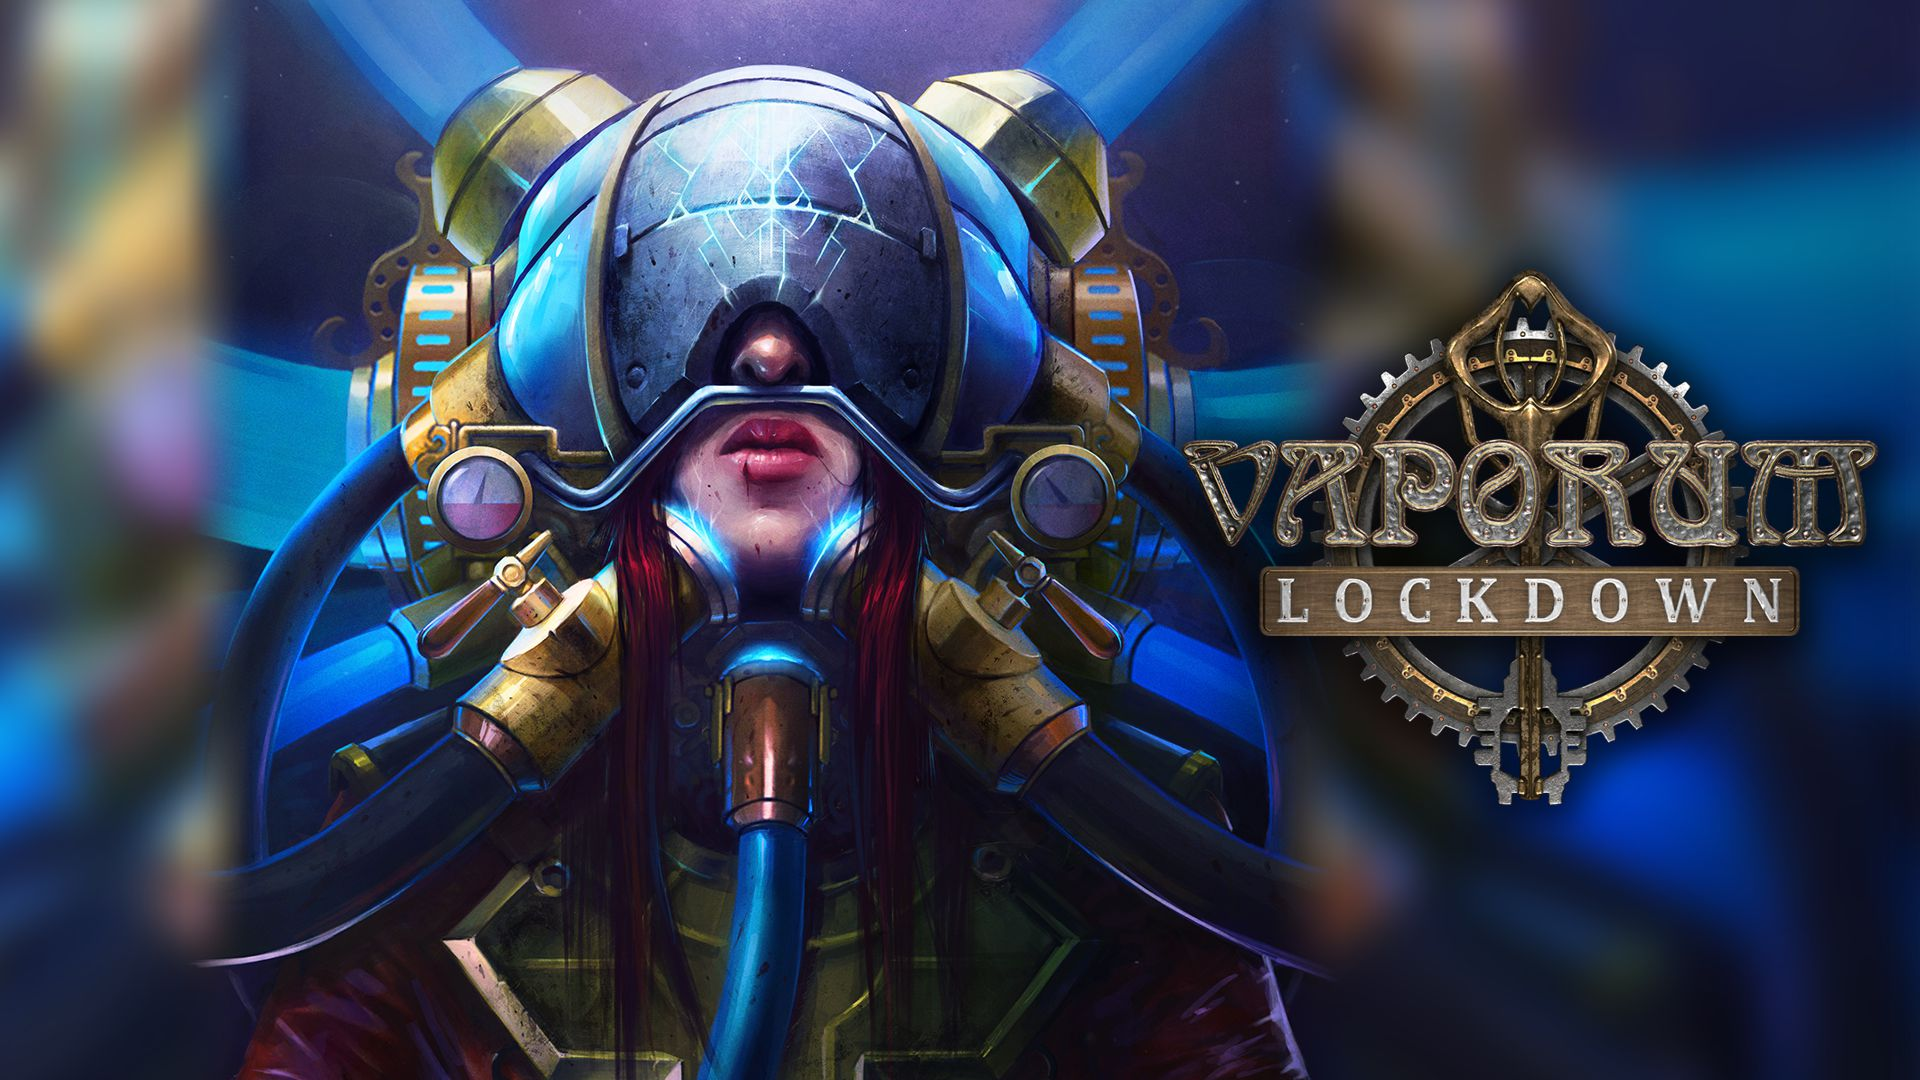 Vaporum Lockdown Principal